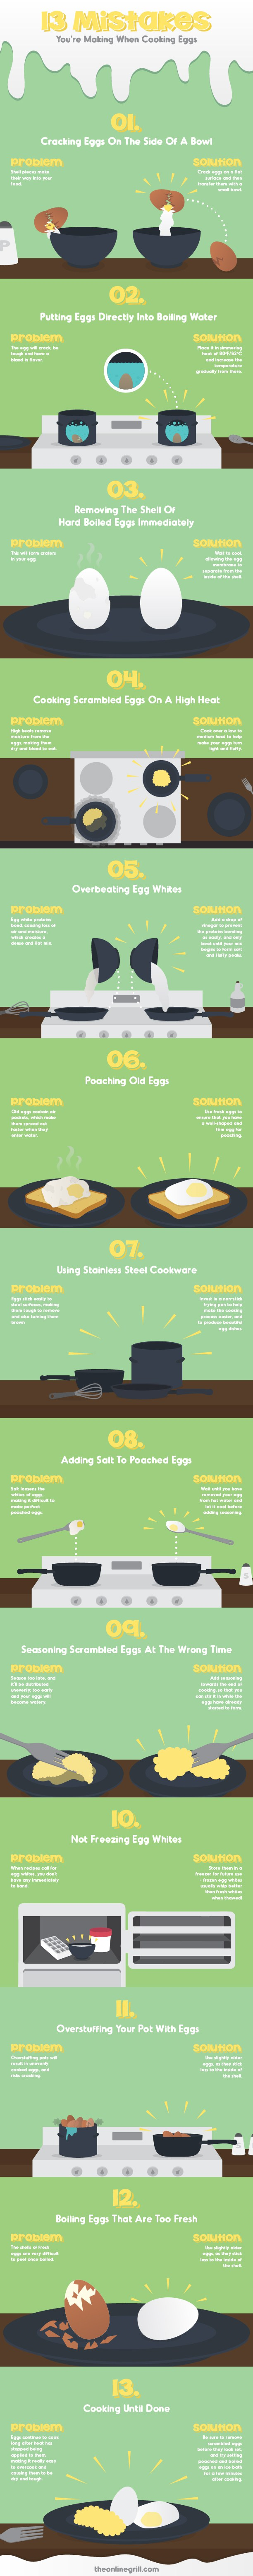 13 Mistakes You're Making When Cooking Eggs infographic